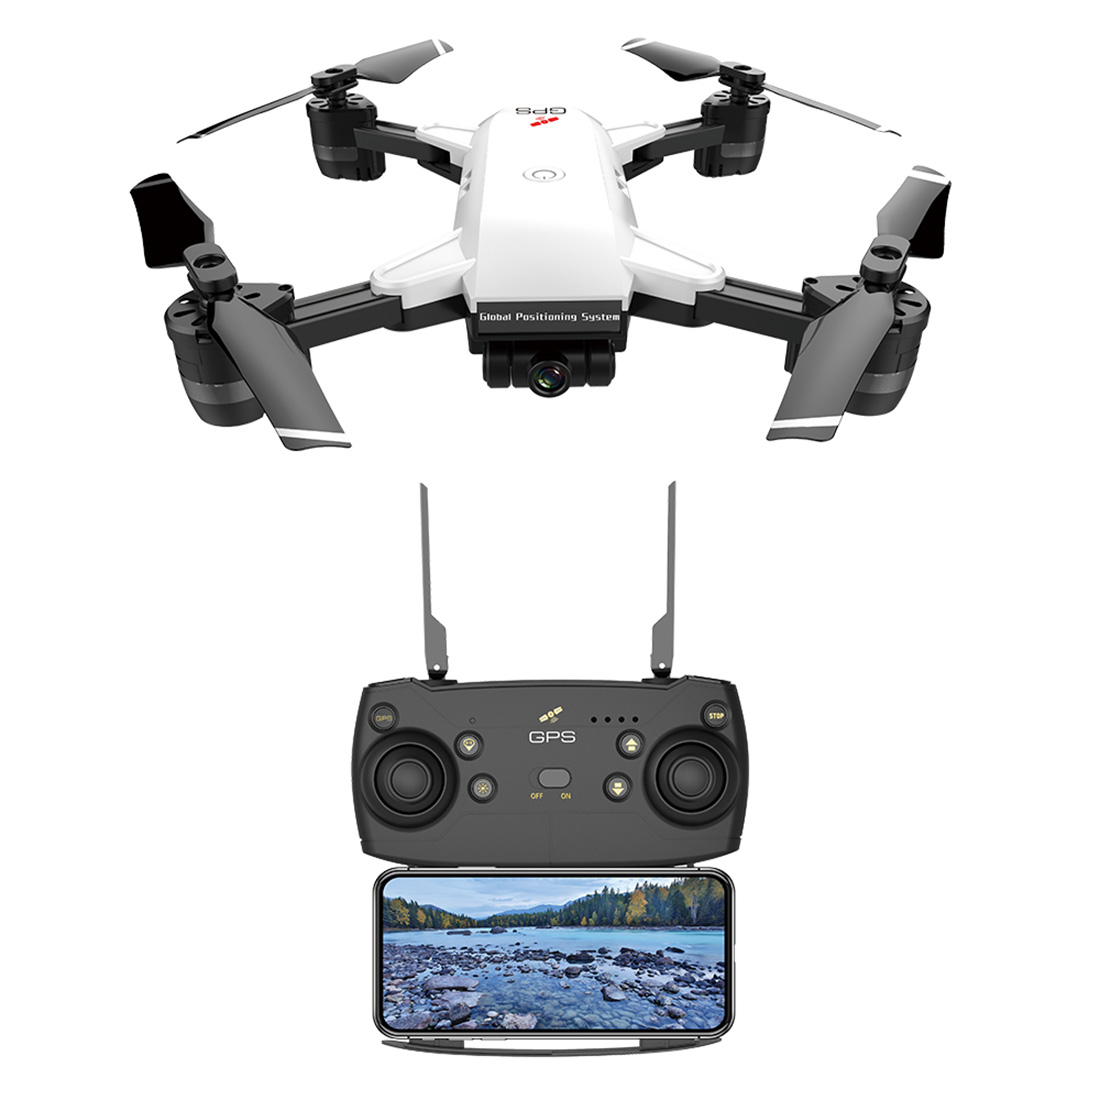 JD-20GPS 5G 2.4G 1080P Folding Remote Control Drone Quadrotor With HD Aerial Precise Return And Long Endurance Educational Toy